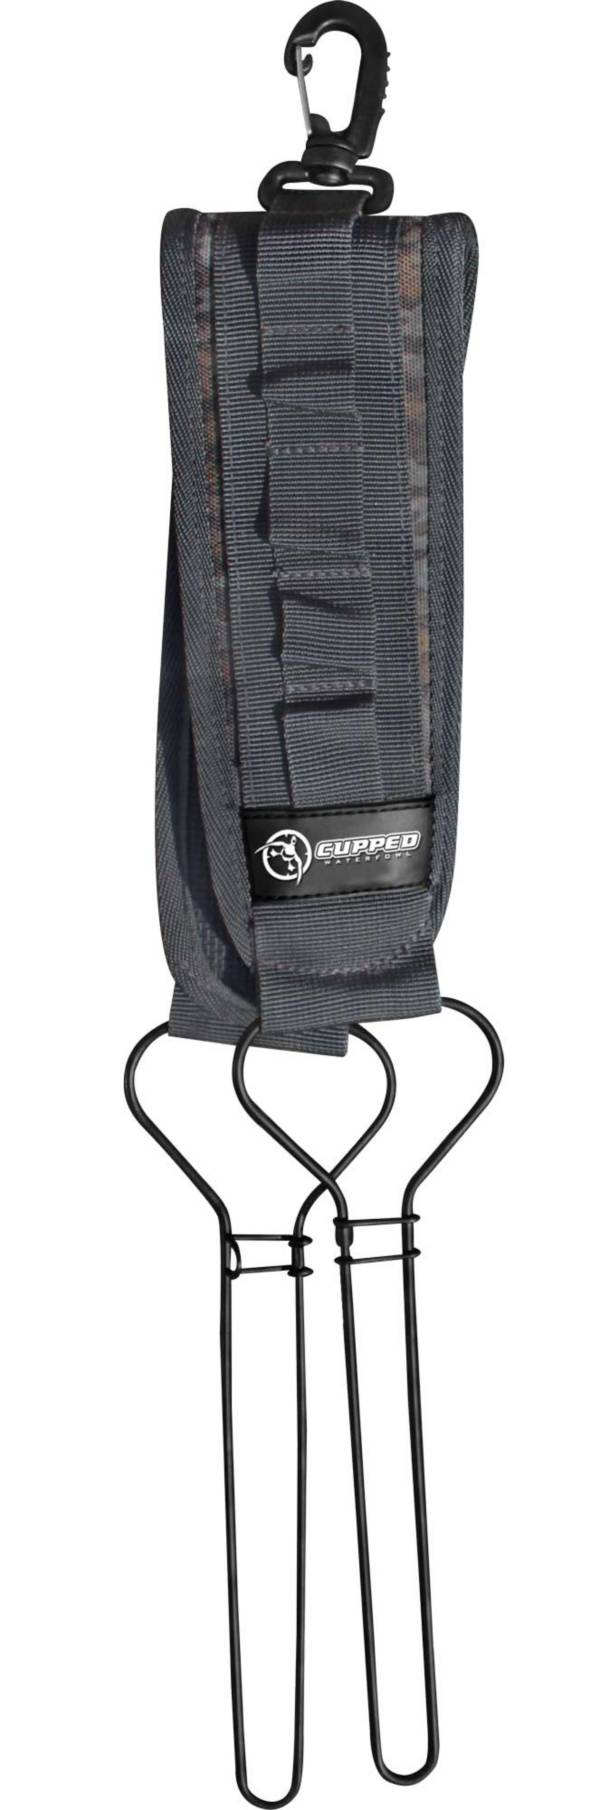 Cupped Duck Strap product image